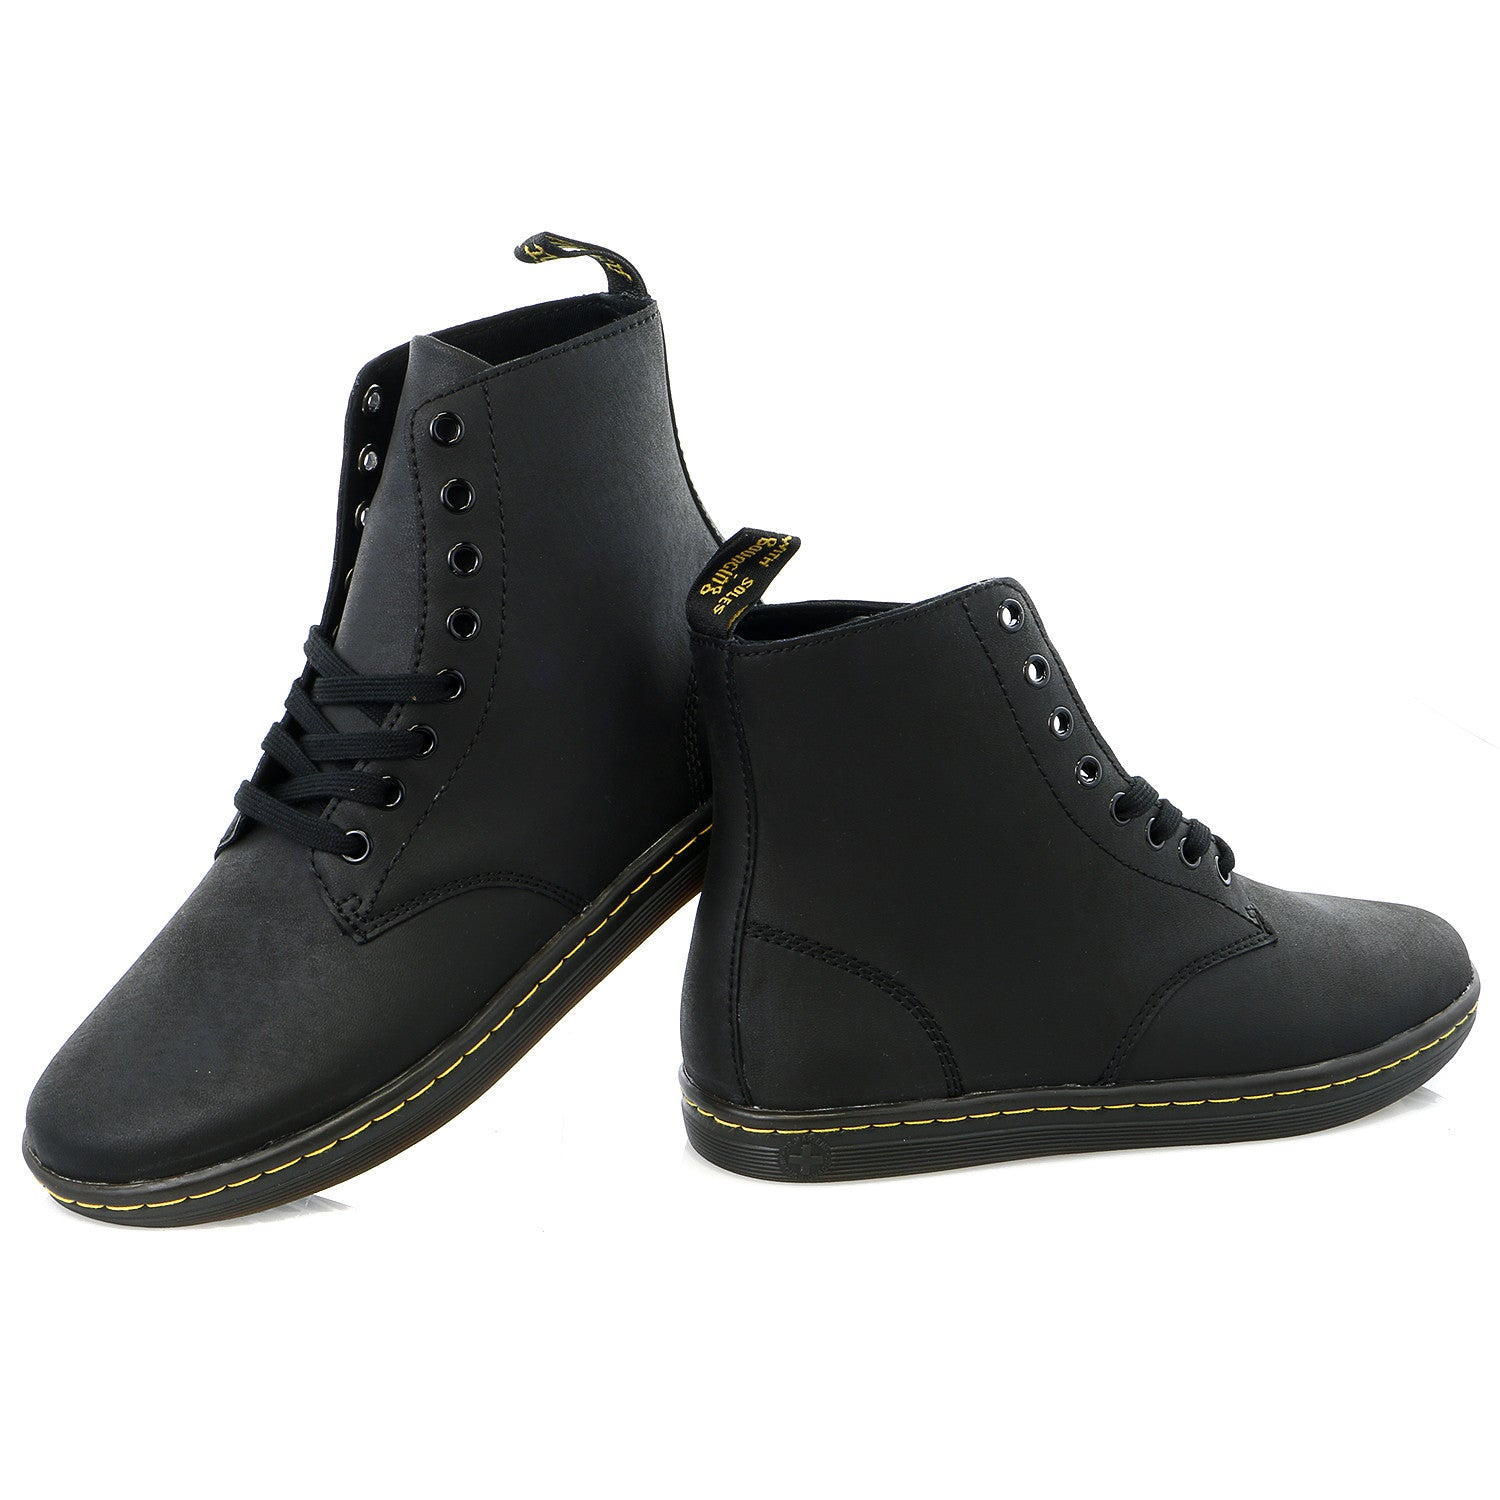 90e91e049d384 Dr. Martens Tobias Boot - Men s - Shoplifestyle